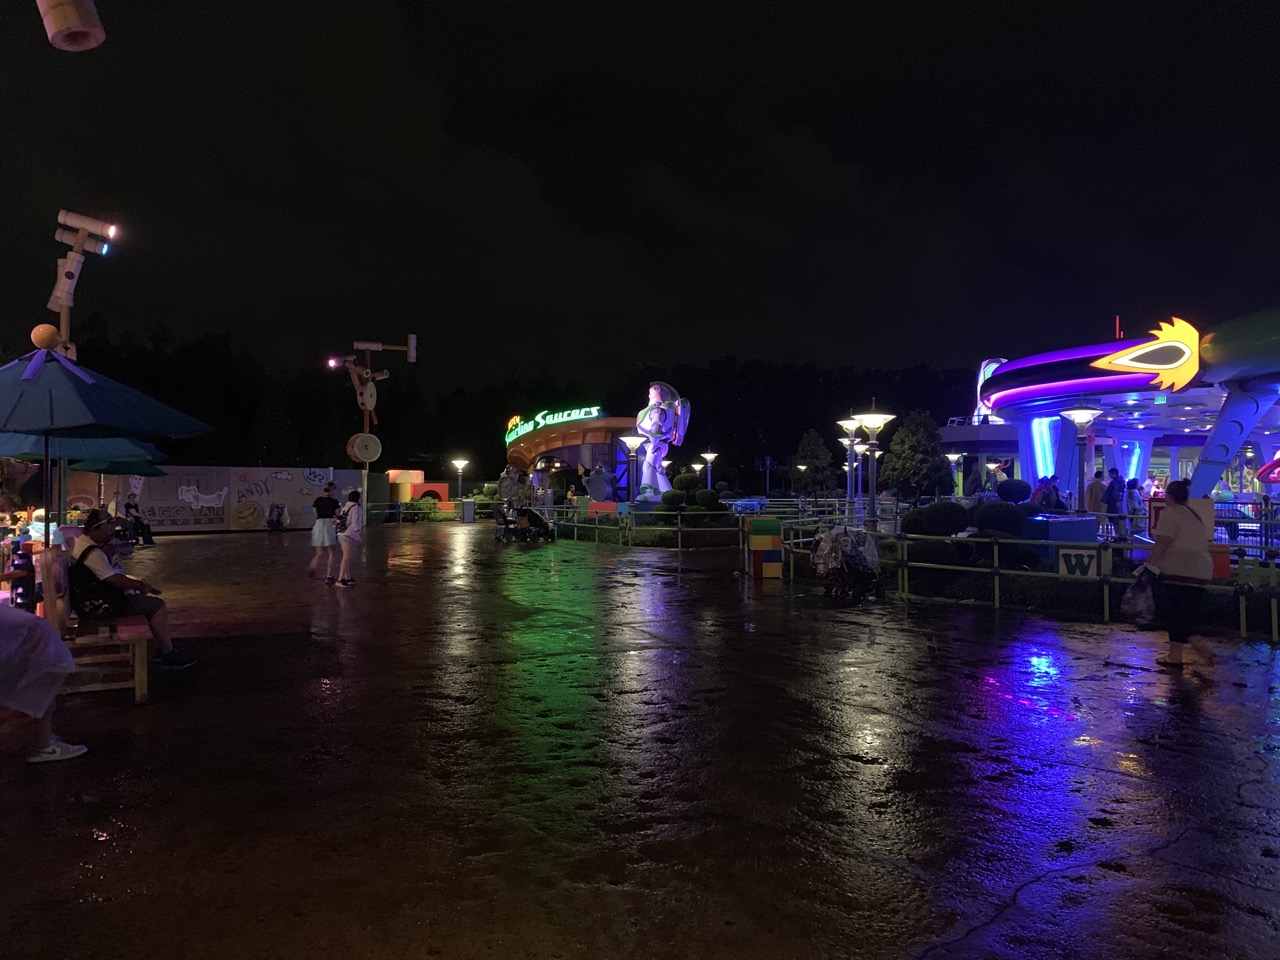 disney world hollywood studios after hours review 05 toy story land.jpeg